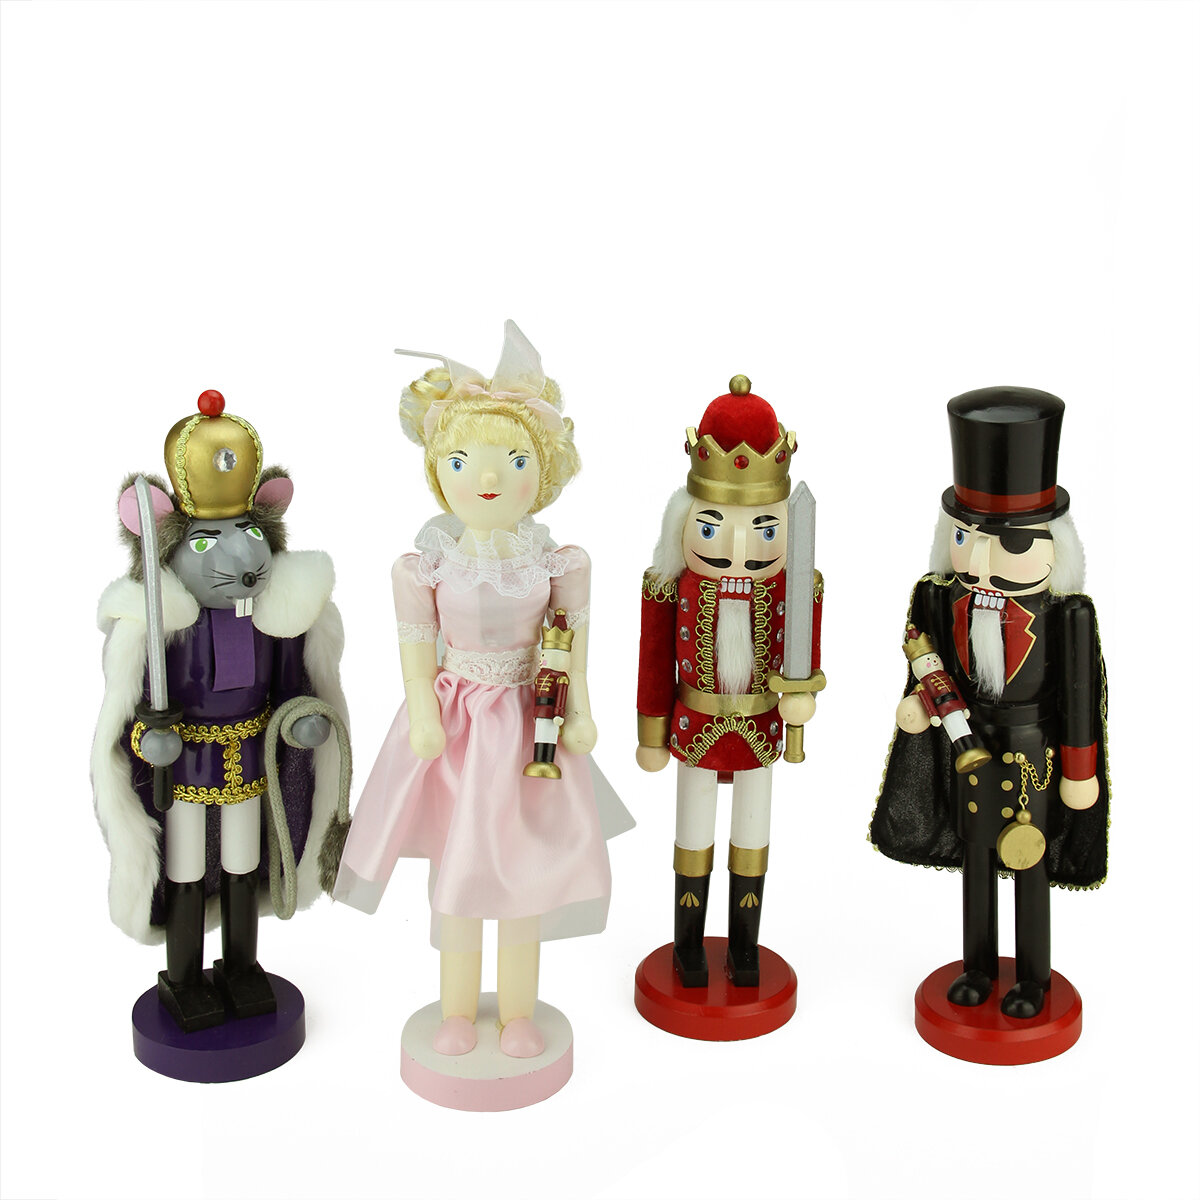 Northlight 4 Piece Decorative Wooden Nutcracker Suite Ballet ...